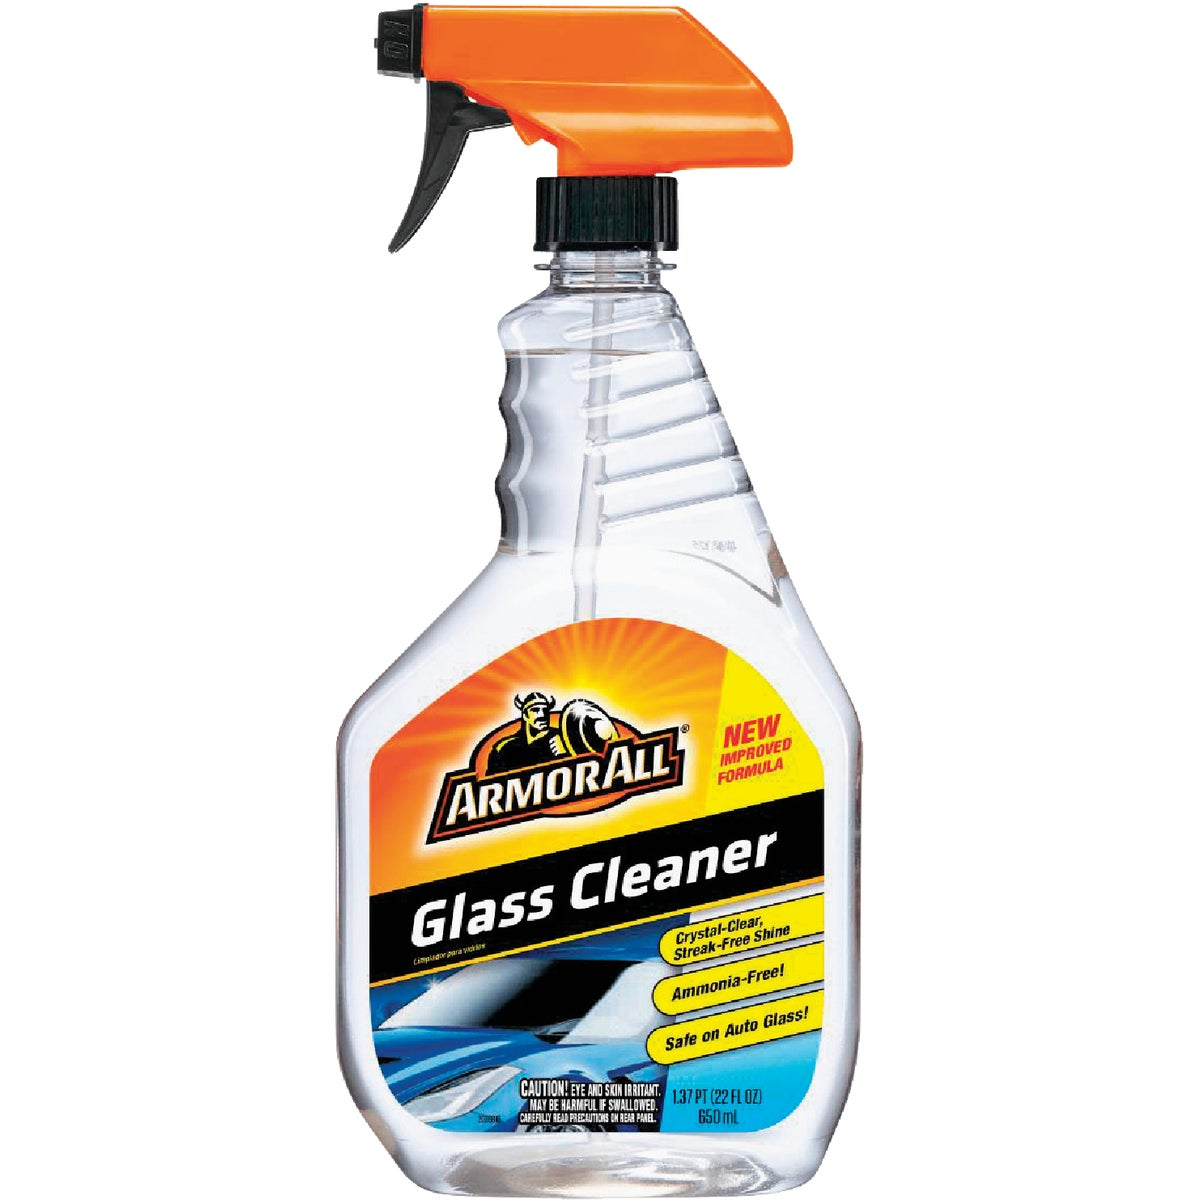 23OZ SPRAY GLASS CLEANER - 630018 by Itw Global Brands